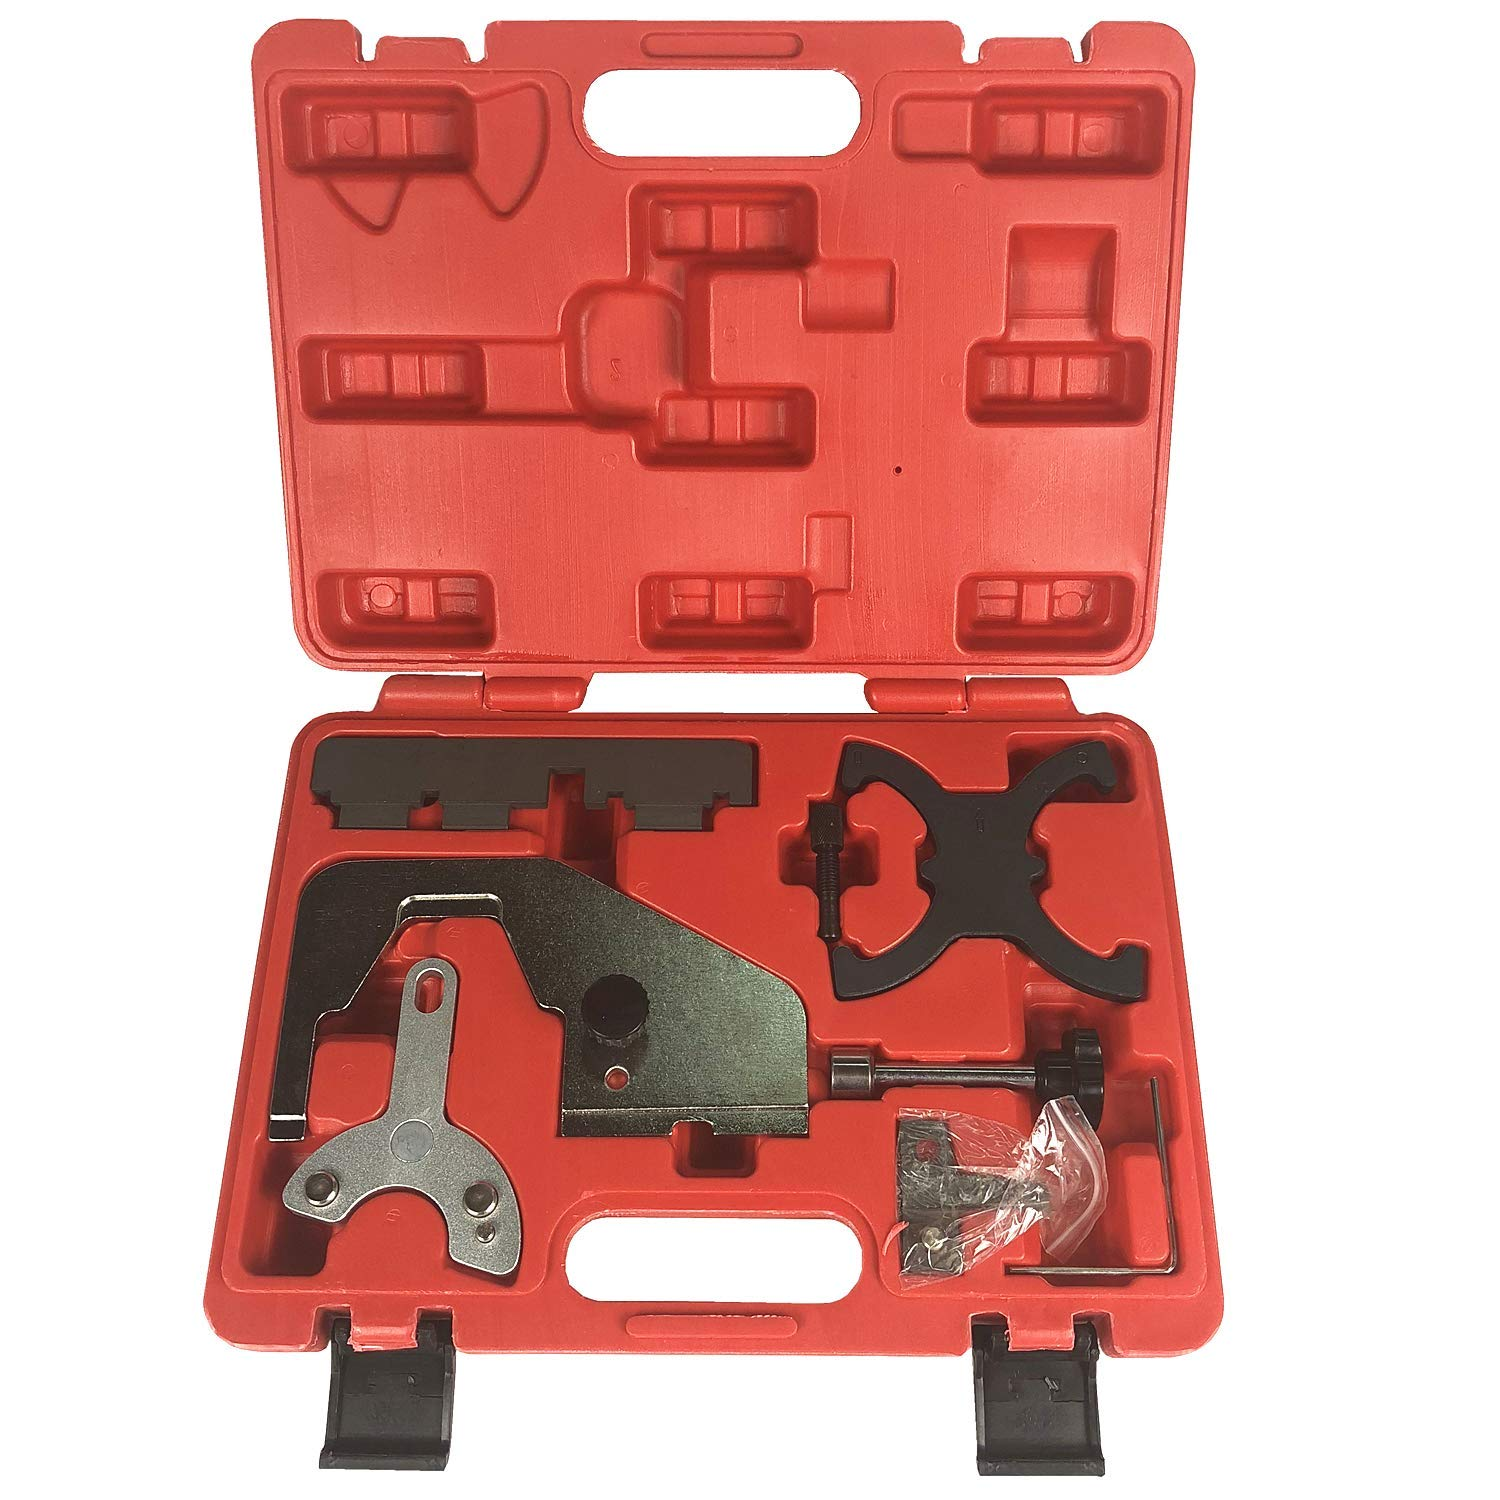 Best Q Engine camshaft Locking Tools for Volvo T4 T5 2.0T Ford 1.5T 1.6T Timing Tool Set ShiQi